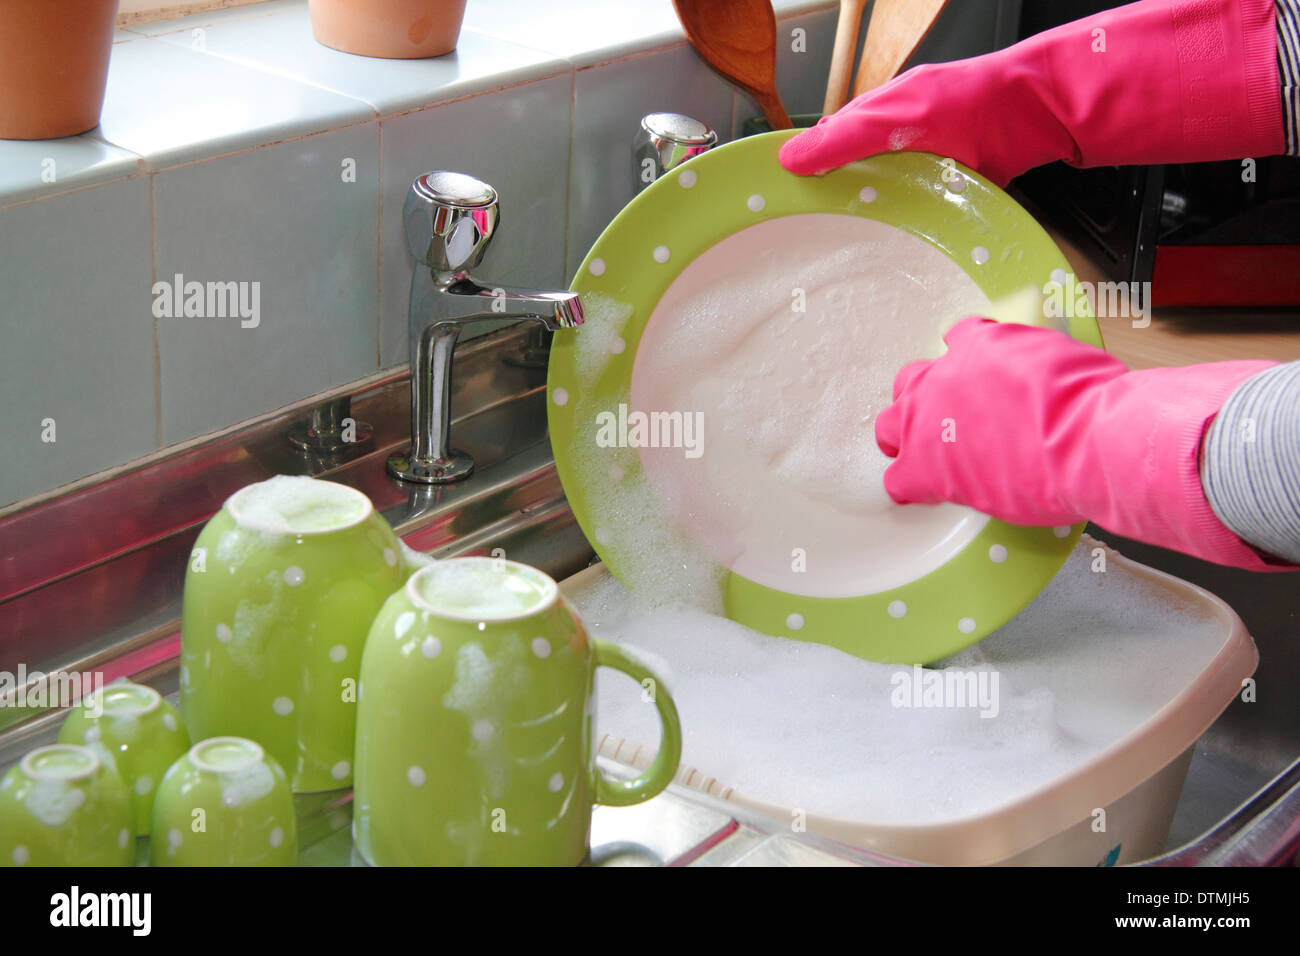 Woman Wearing Rubber Gloves Washing Up The Pots At The